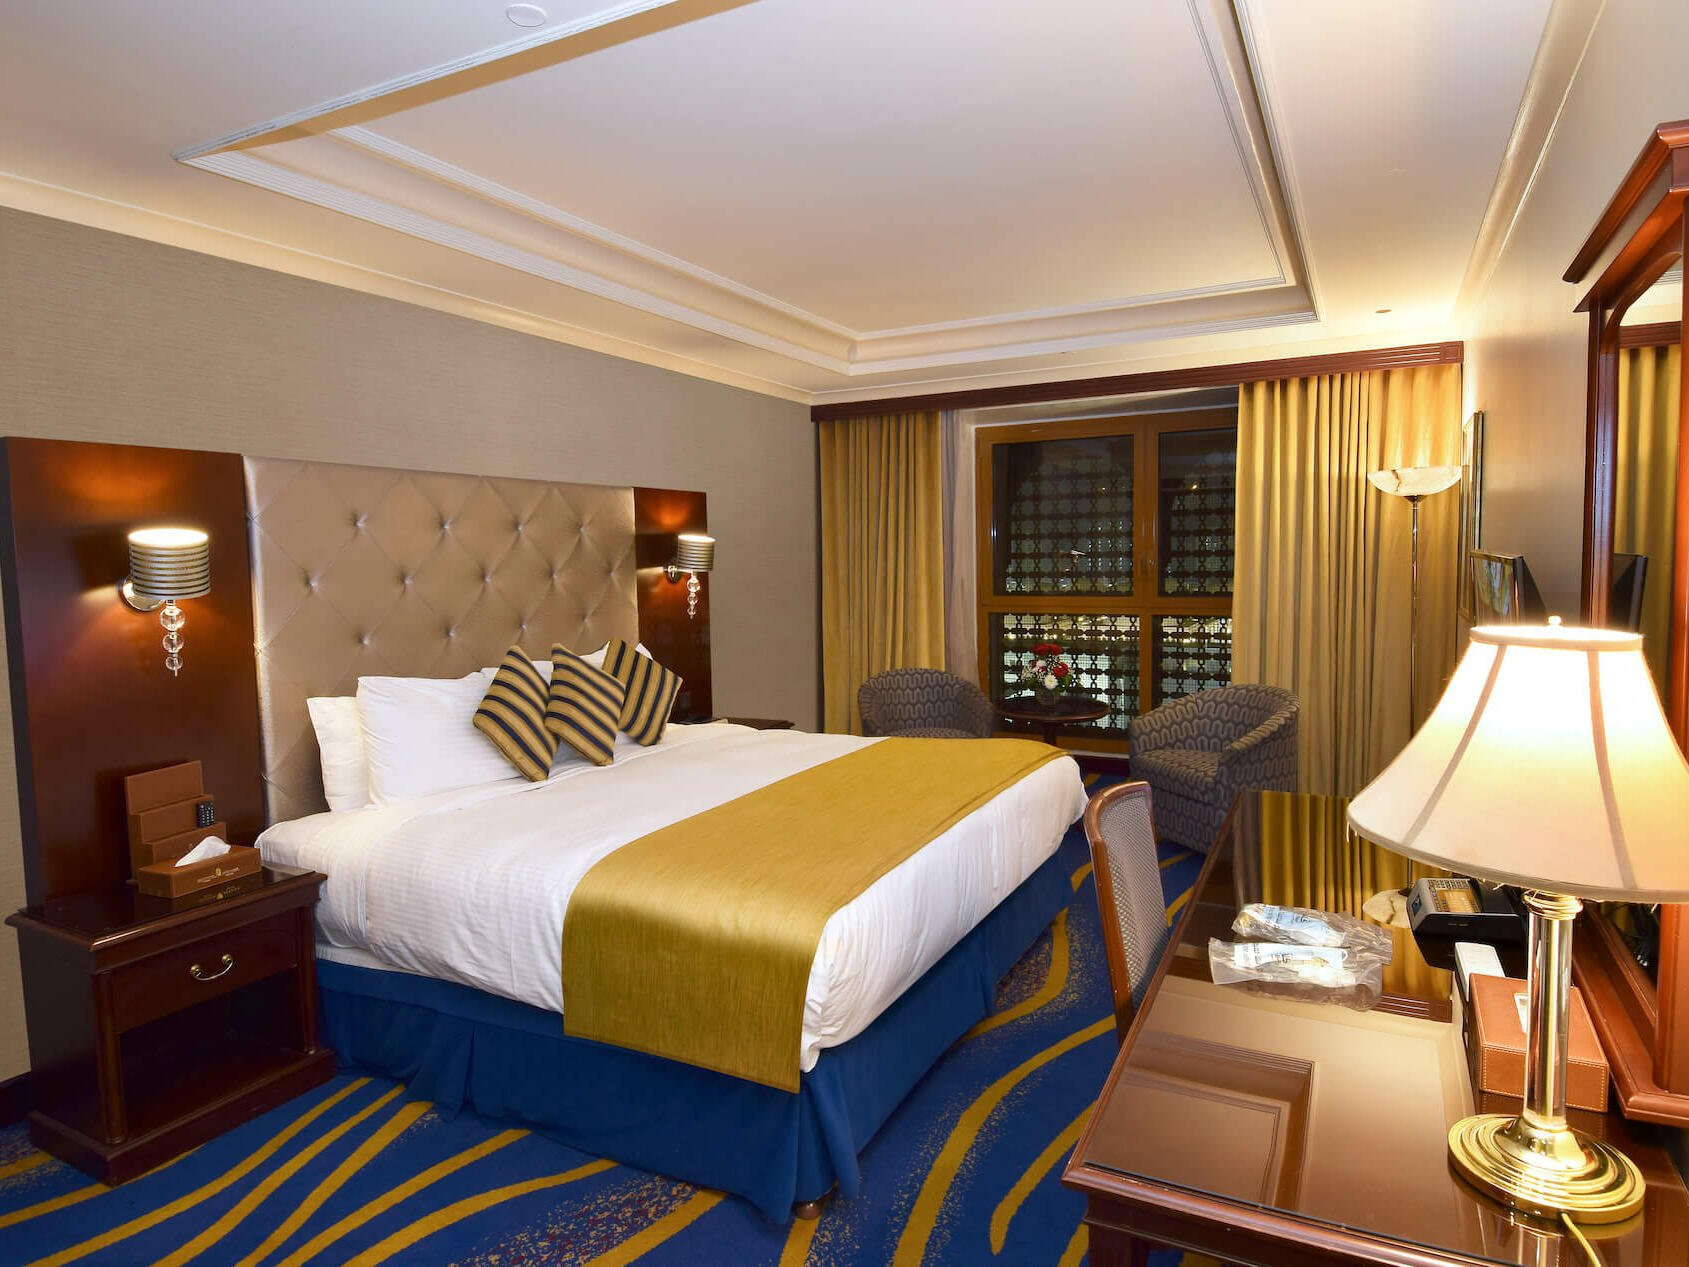 Deluxe King Bed Room Haram View